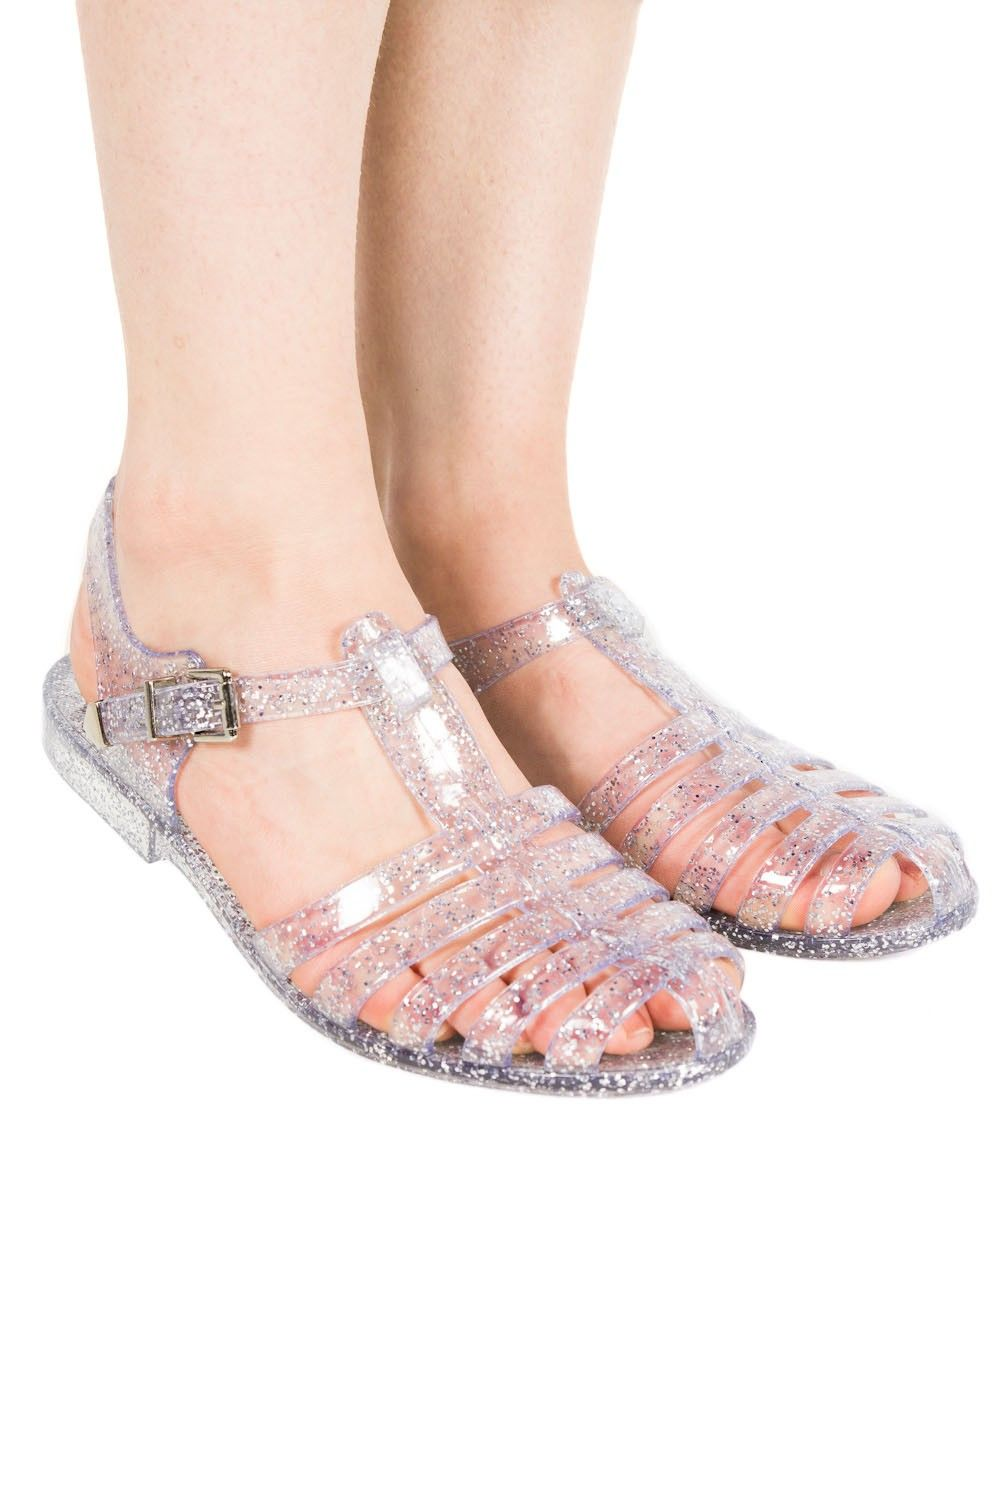 de99d37652c8 Aine Flat Jelly Shoes In Clear Glitter